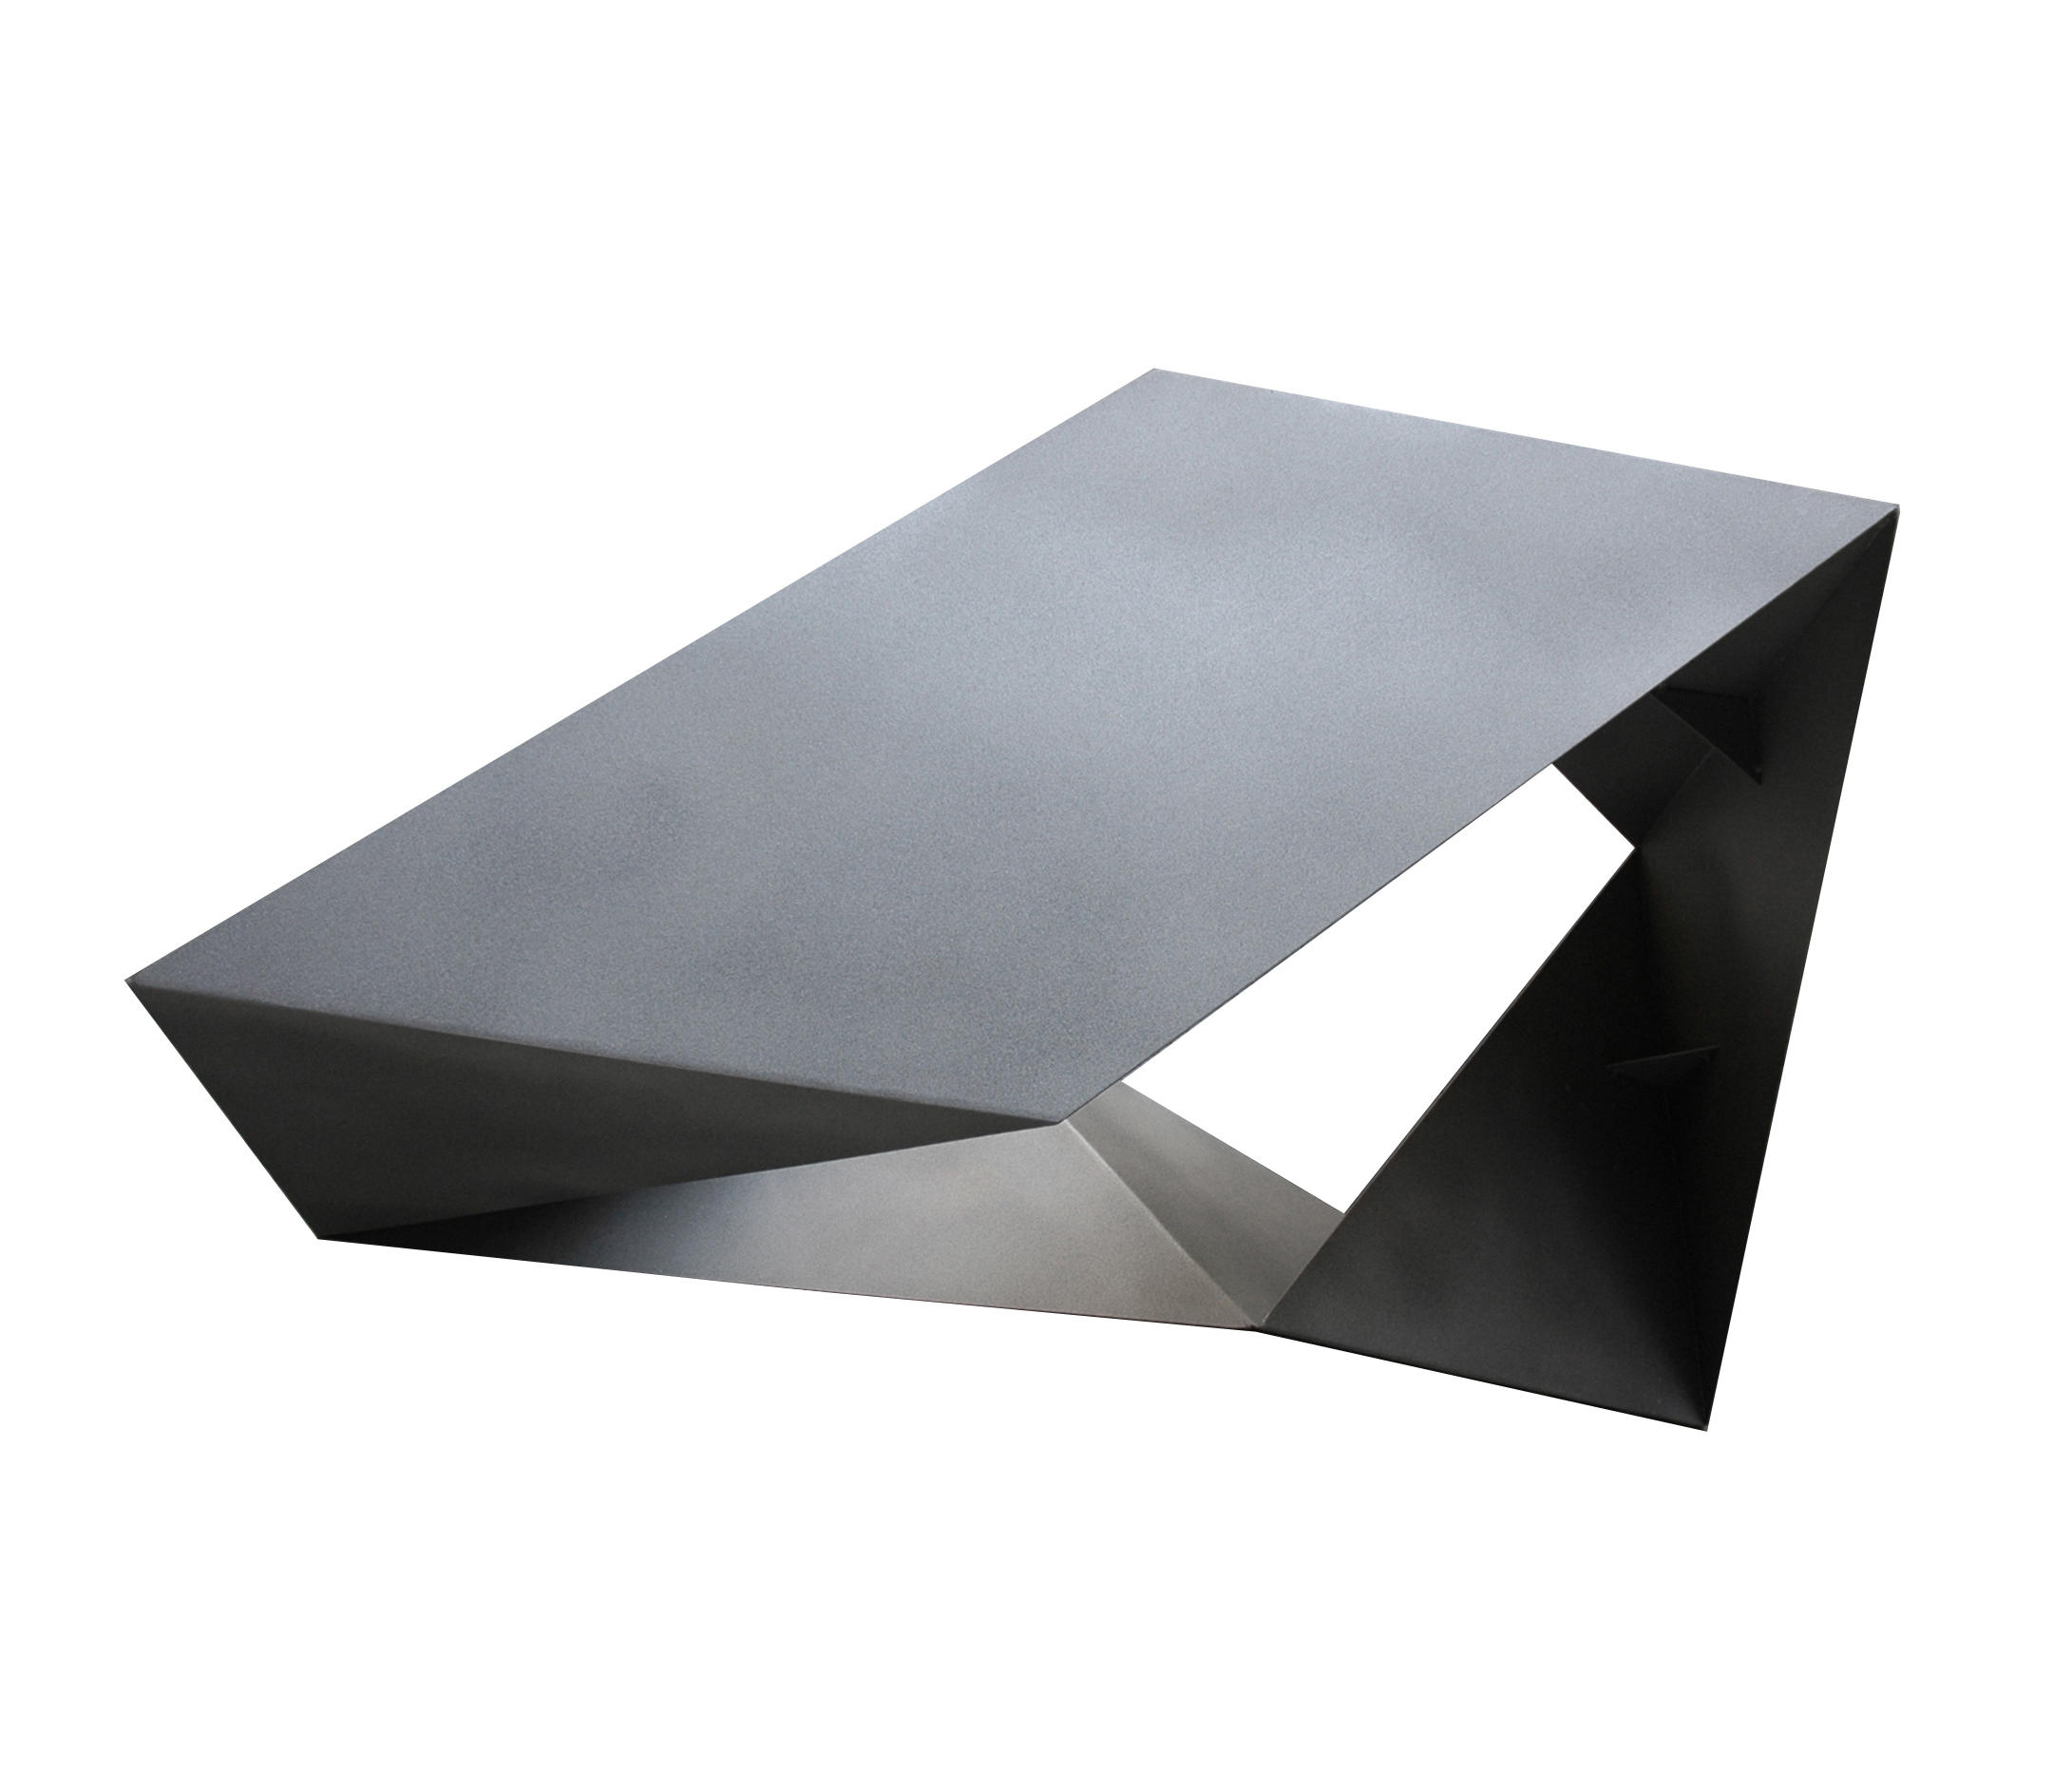 MOEBIUS FOLD Lounge tables from xbritt moebel Architonic